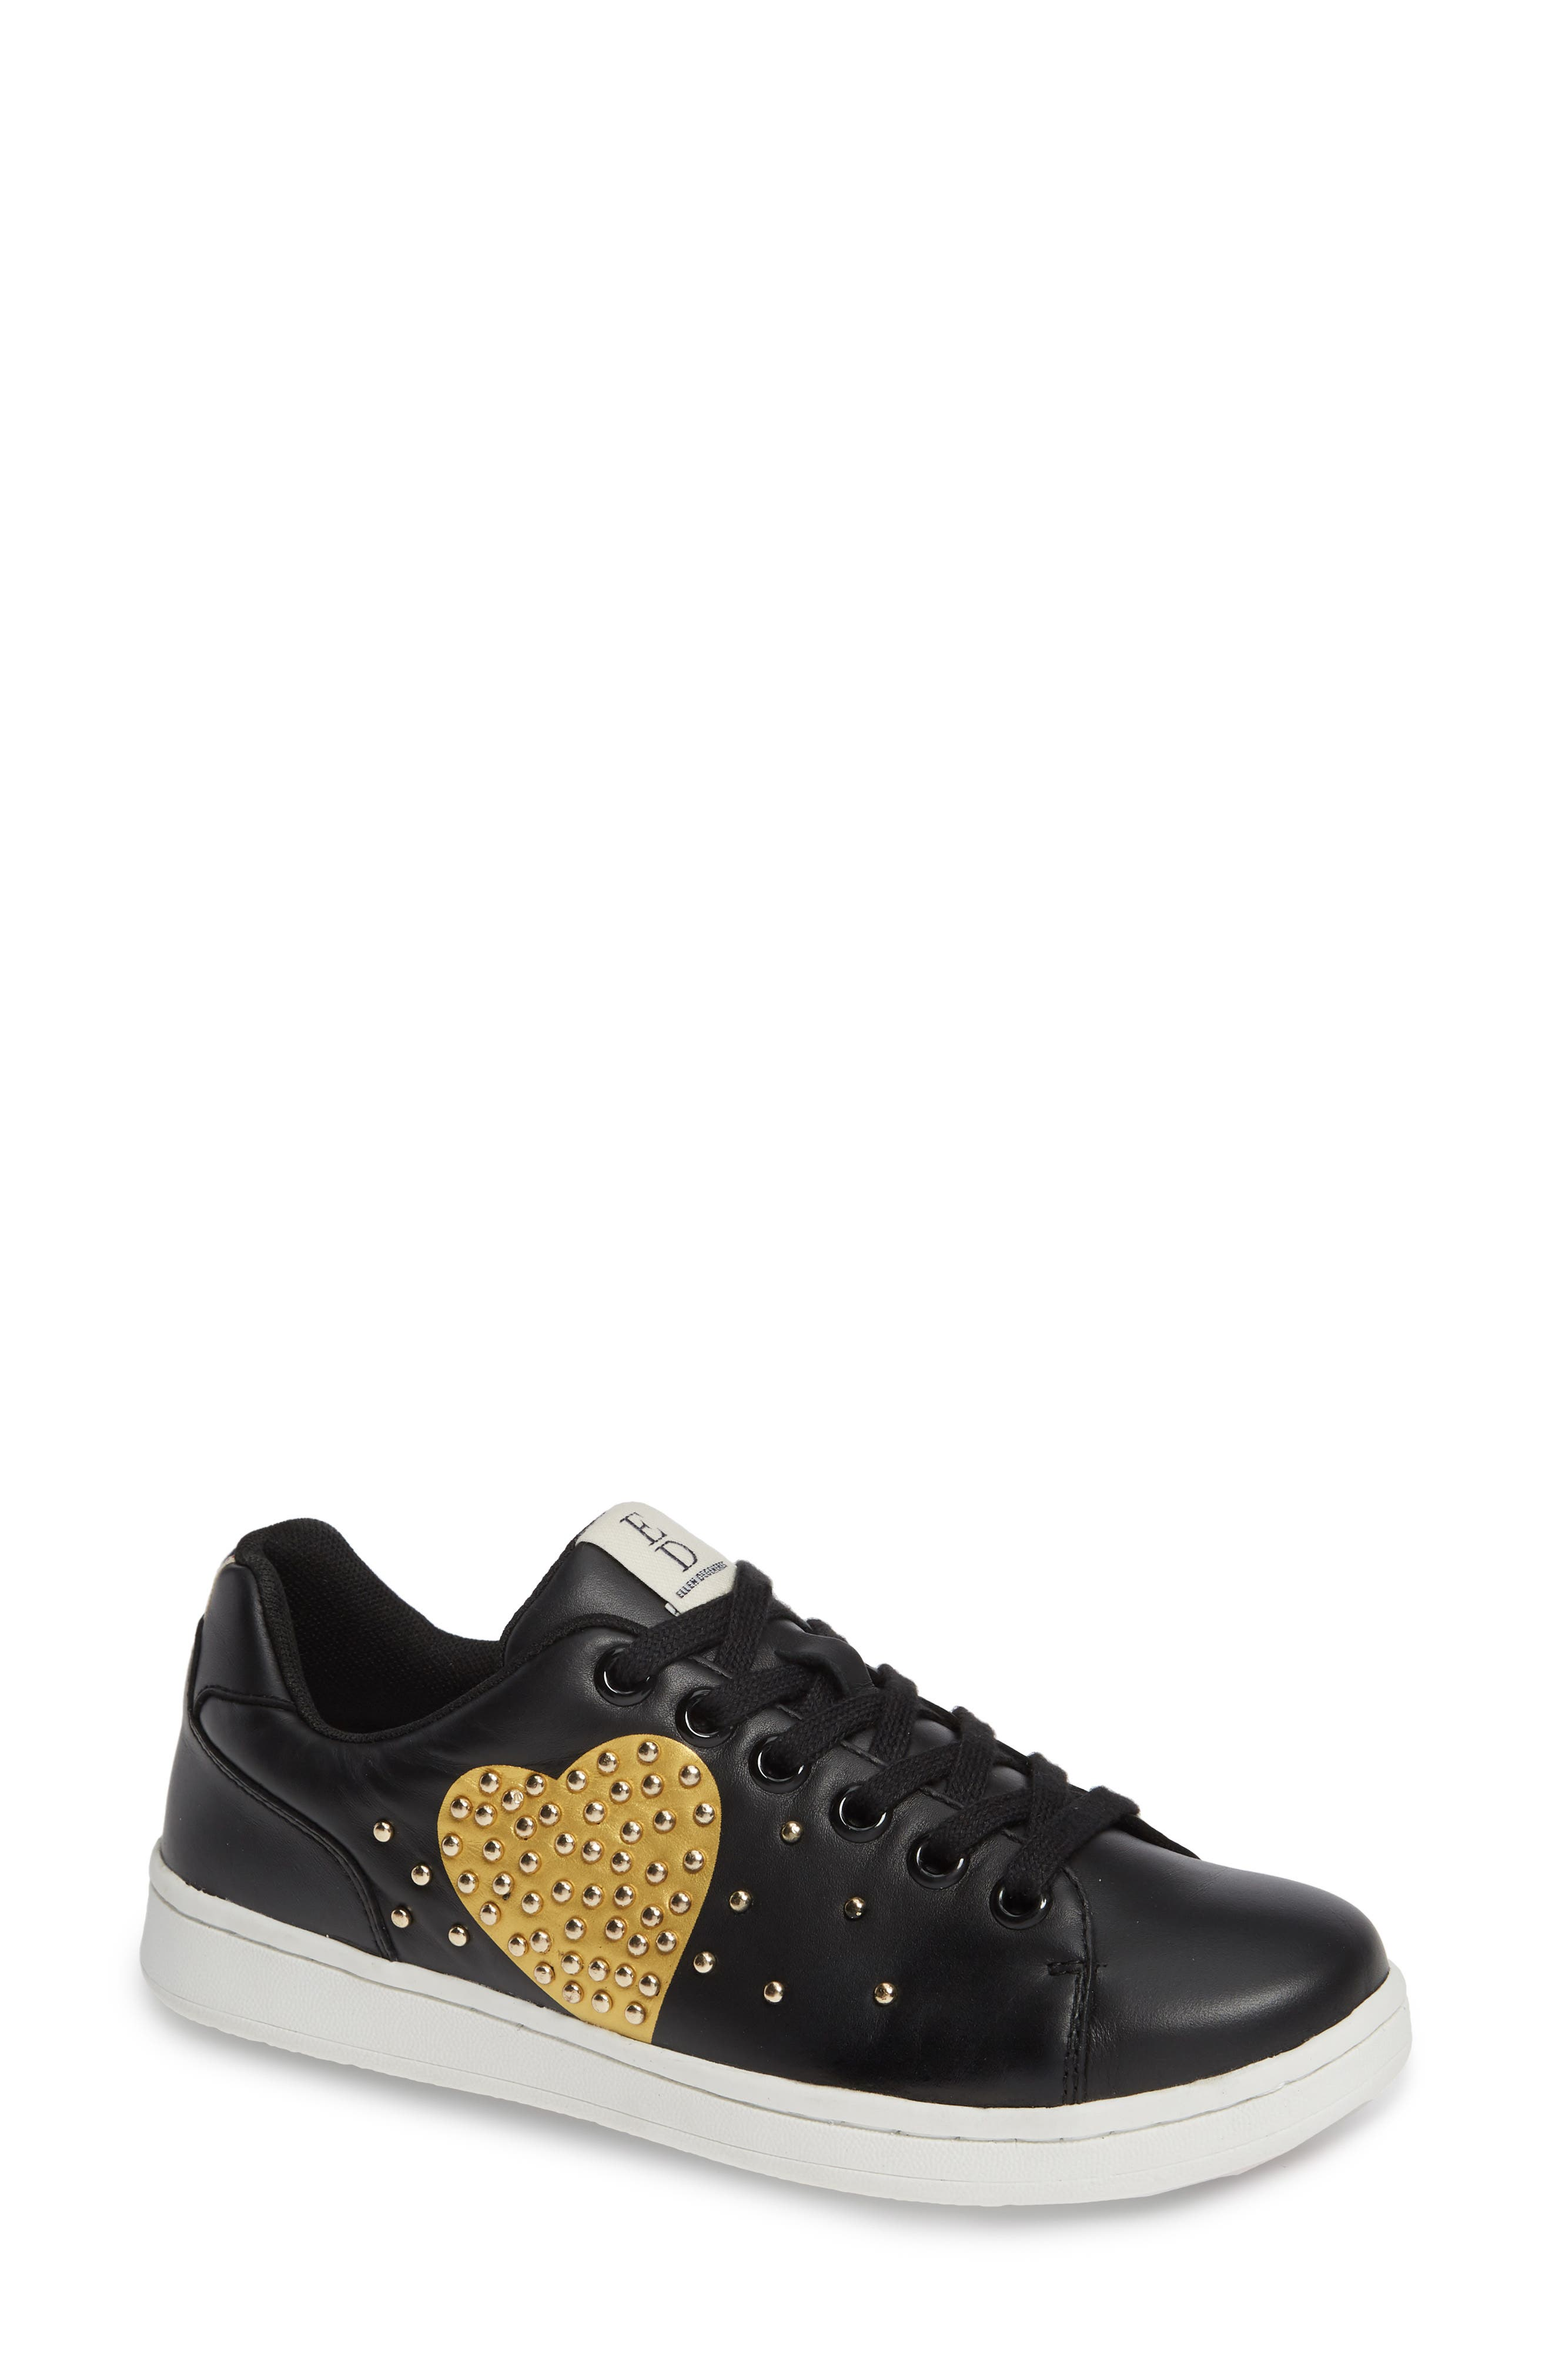 Chamour Sneaker,                         Main,                         color, BLACK/ GOLD LEATHER